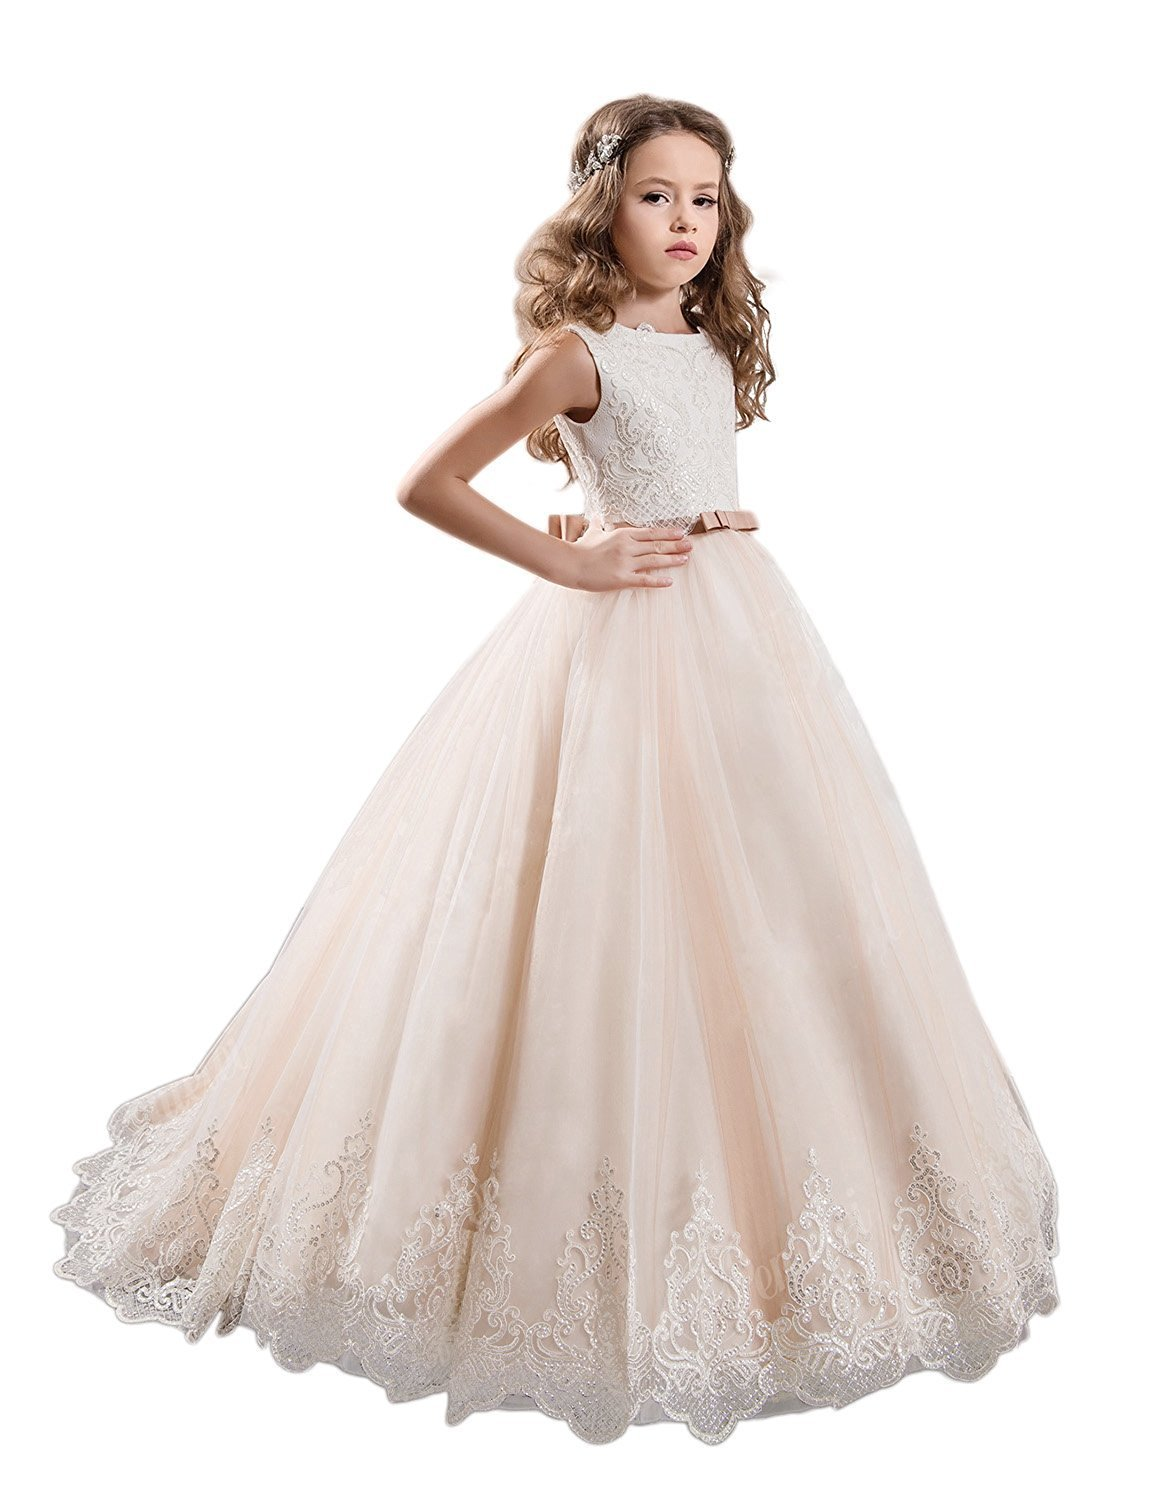 KissAngel Ivory Long Lace Flower Girl Dresses Champagne Less Party Dress (2, Ivory &Champagne) by KissAngel (Image #1)